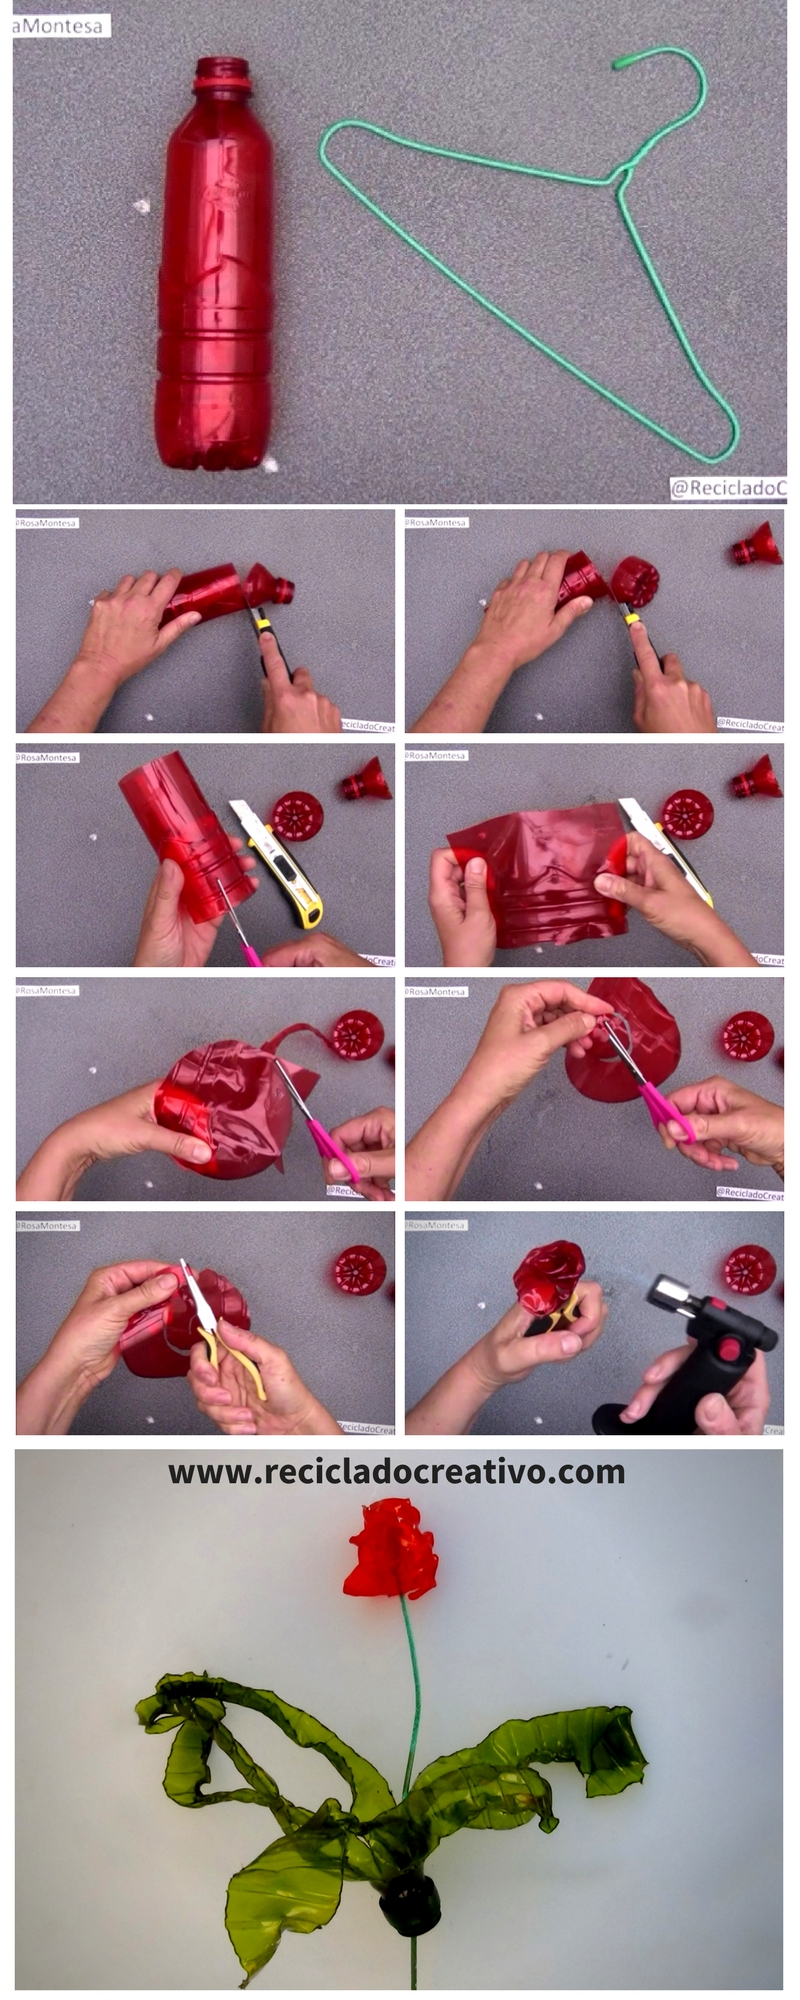 Picture of Step by Step. Before and After. How to Make a Flower - Red Rose